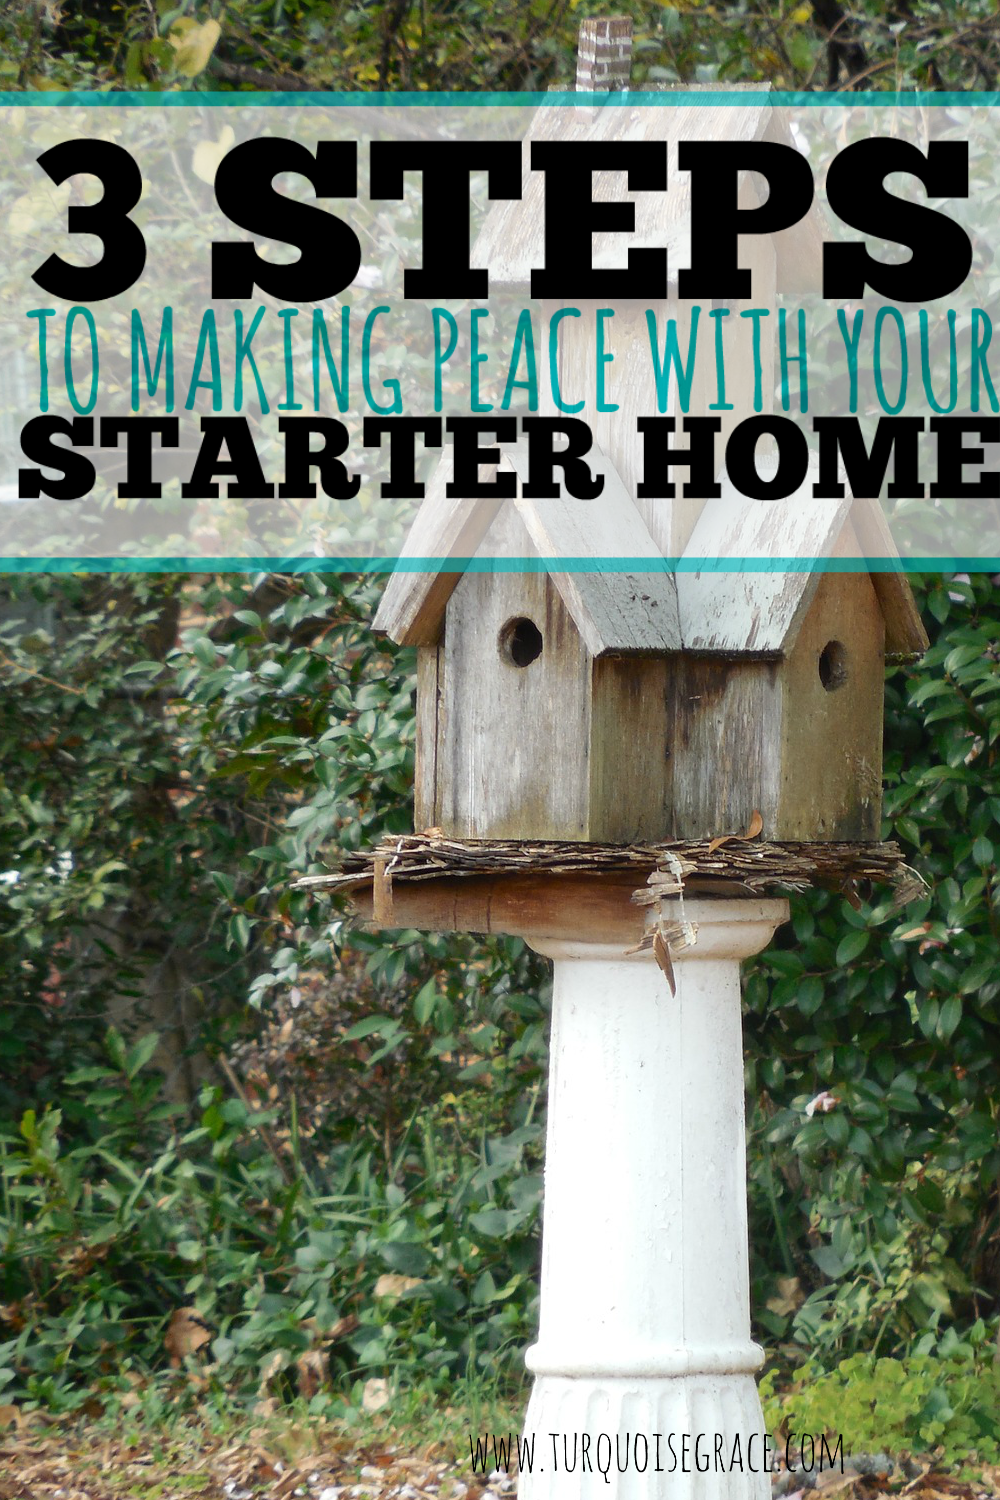 3-Steps-to-Making-Peace-with-your-Starter-Home